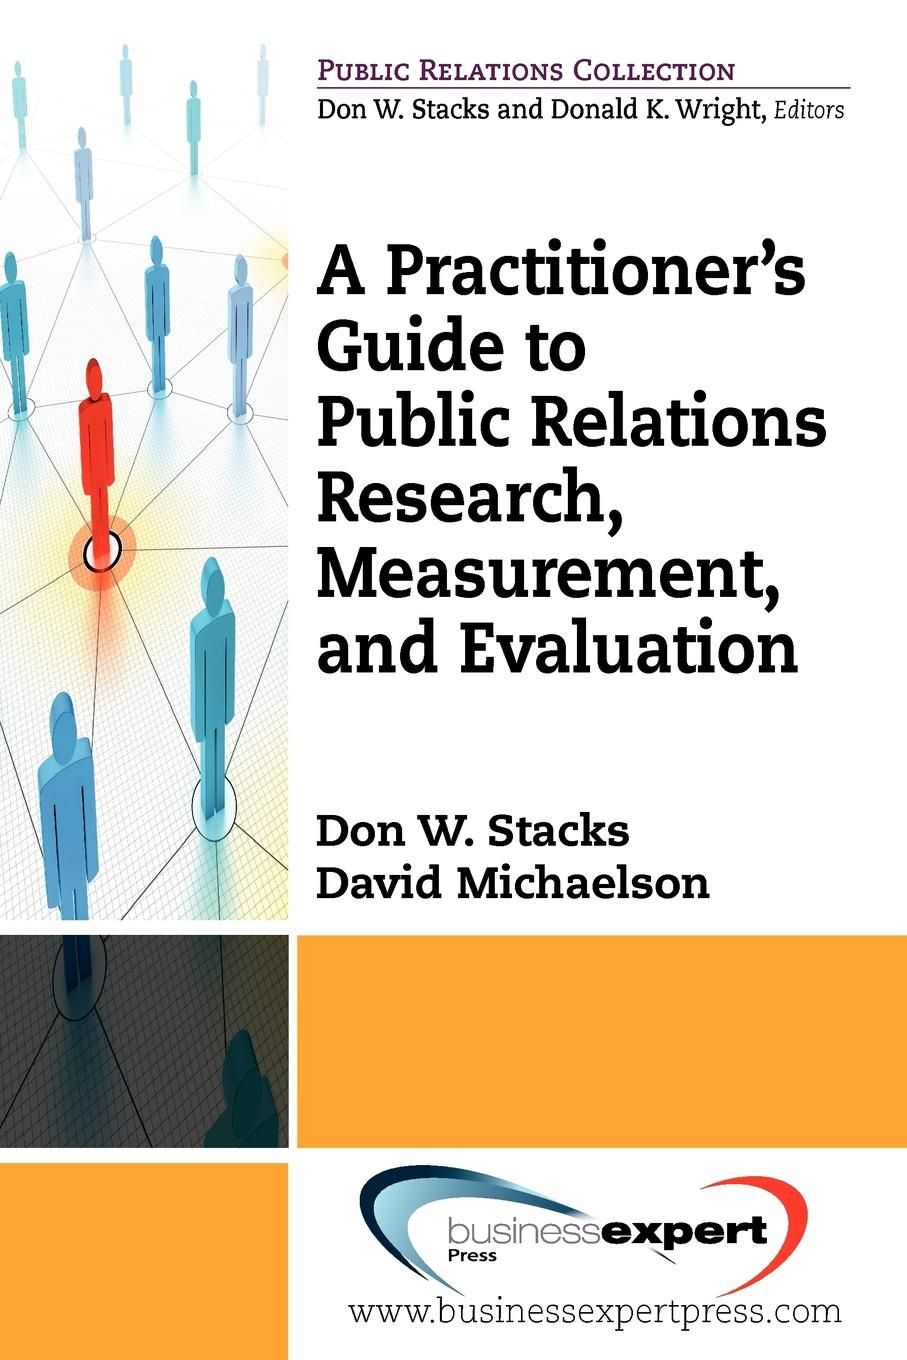 Don Stacks, Michaelson David, Don Stacks A Practioner.s Guide to Public Relations Research, Measurement and Evaluation moseley james l handbook of improving performance in the workplace measurement and evaluation